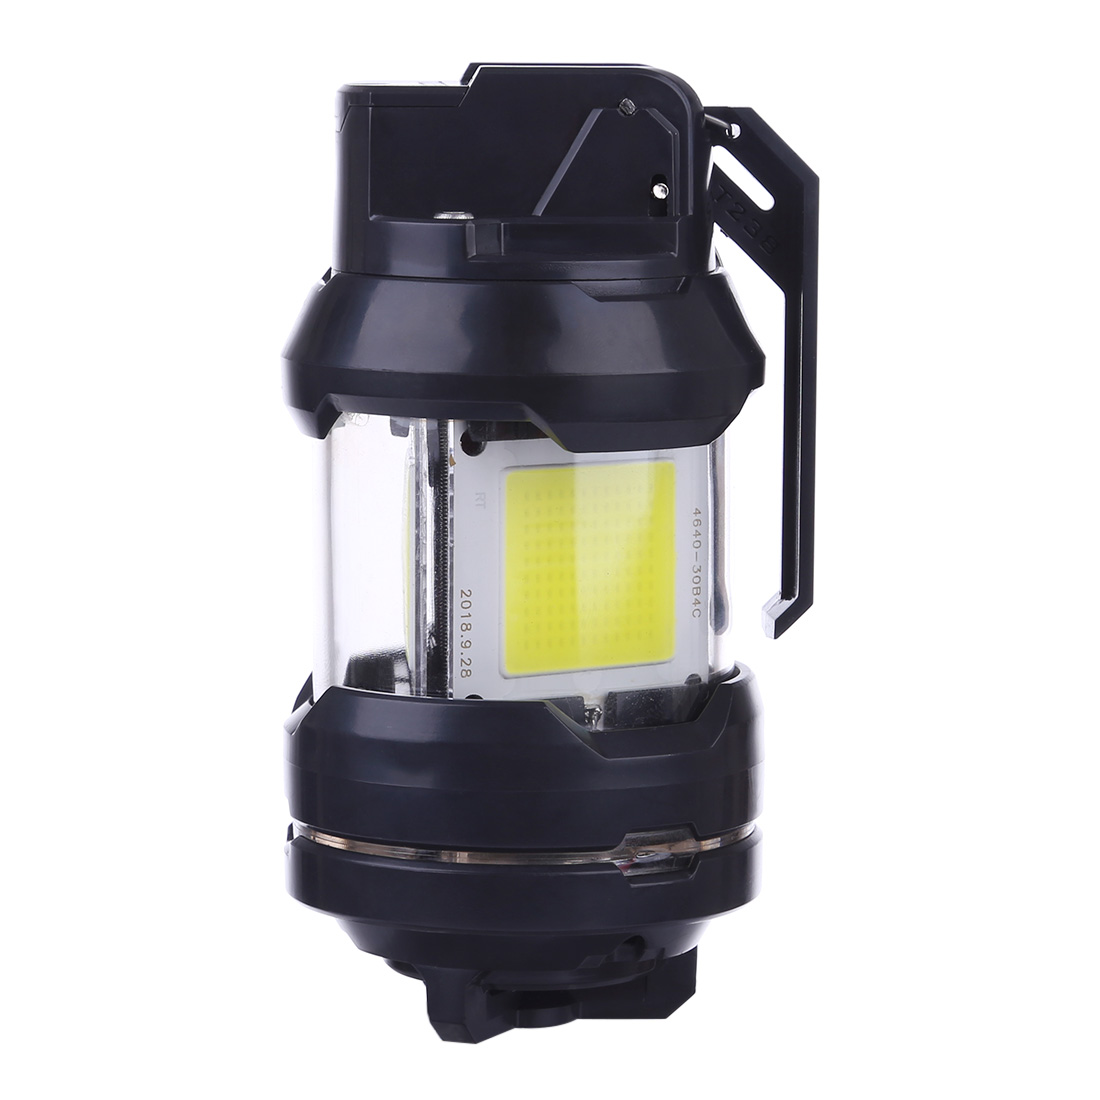 T238 Flash Bang Flash Bomb LED Frequency Bright Cool Stun Bomb For Nerf  Gel Ball Blaster Airsoft Night Fight-- Without Battery